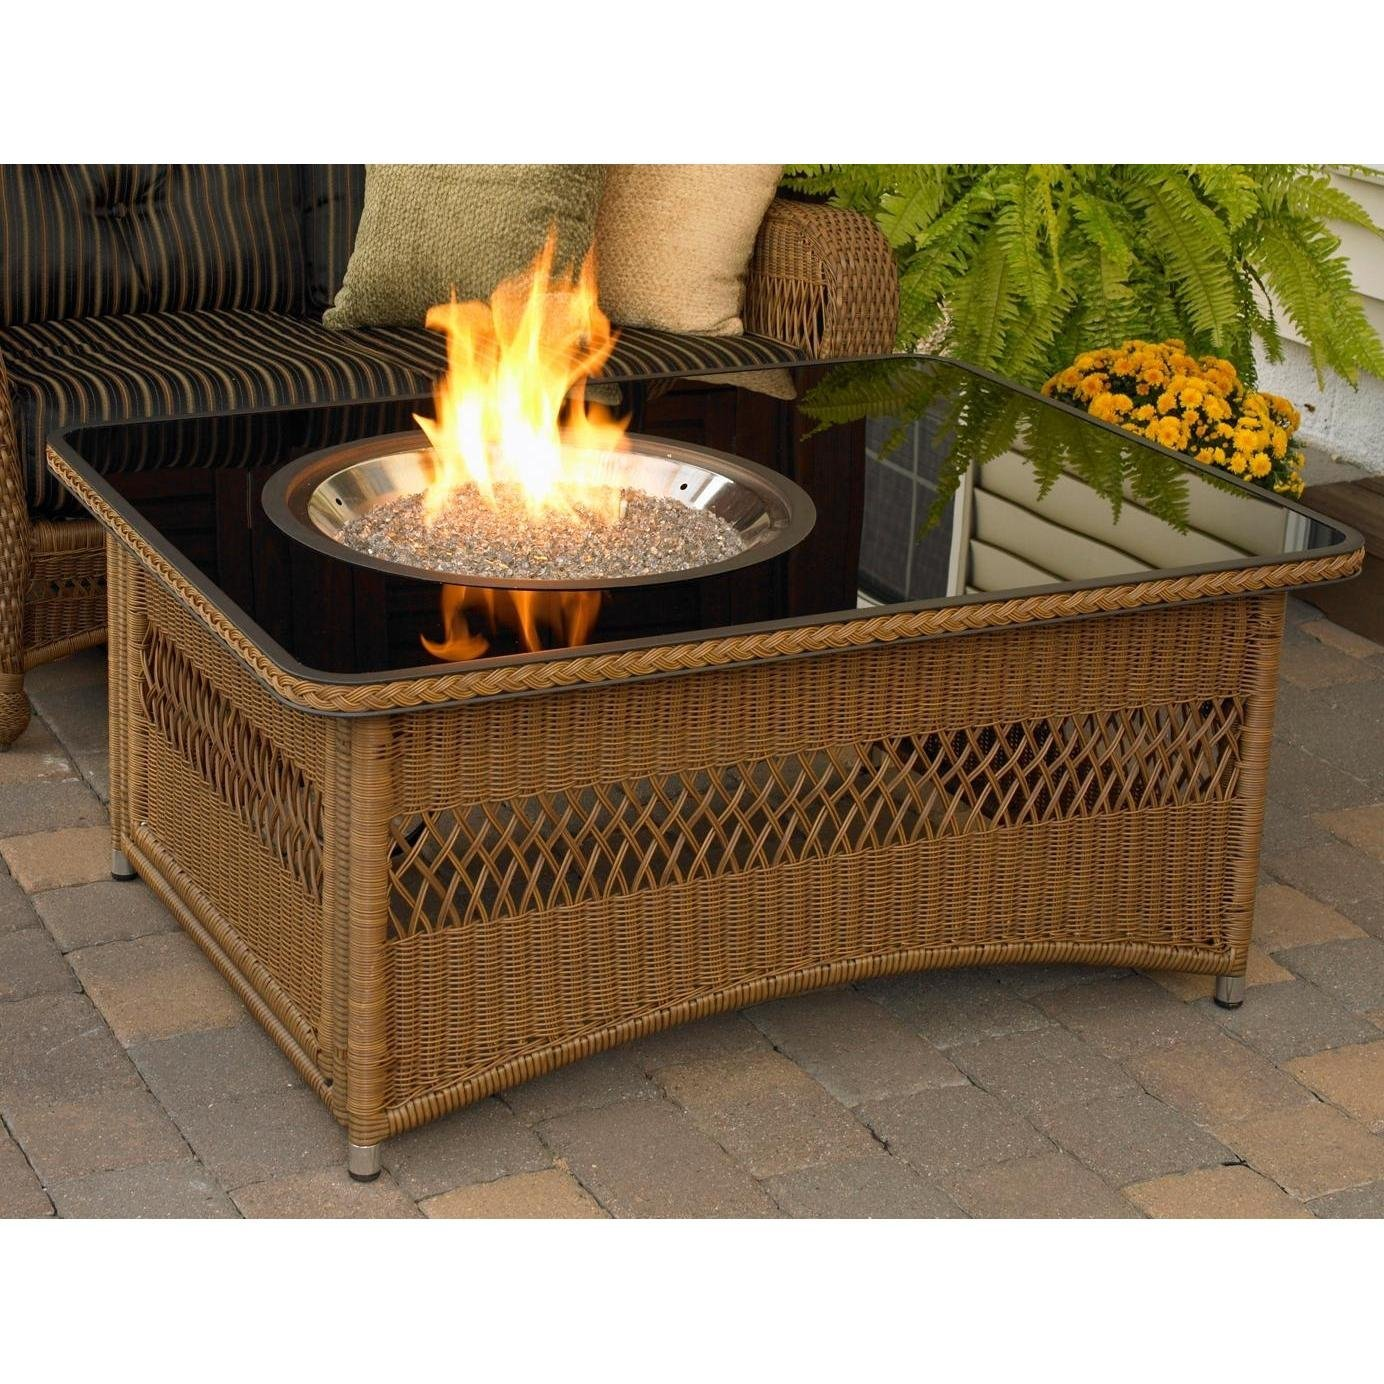 Outdoor Patio Furniture Fire Pit Table. fire pit blog outdoor ...